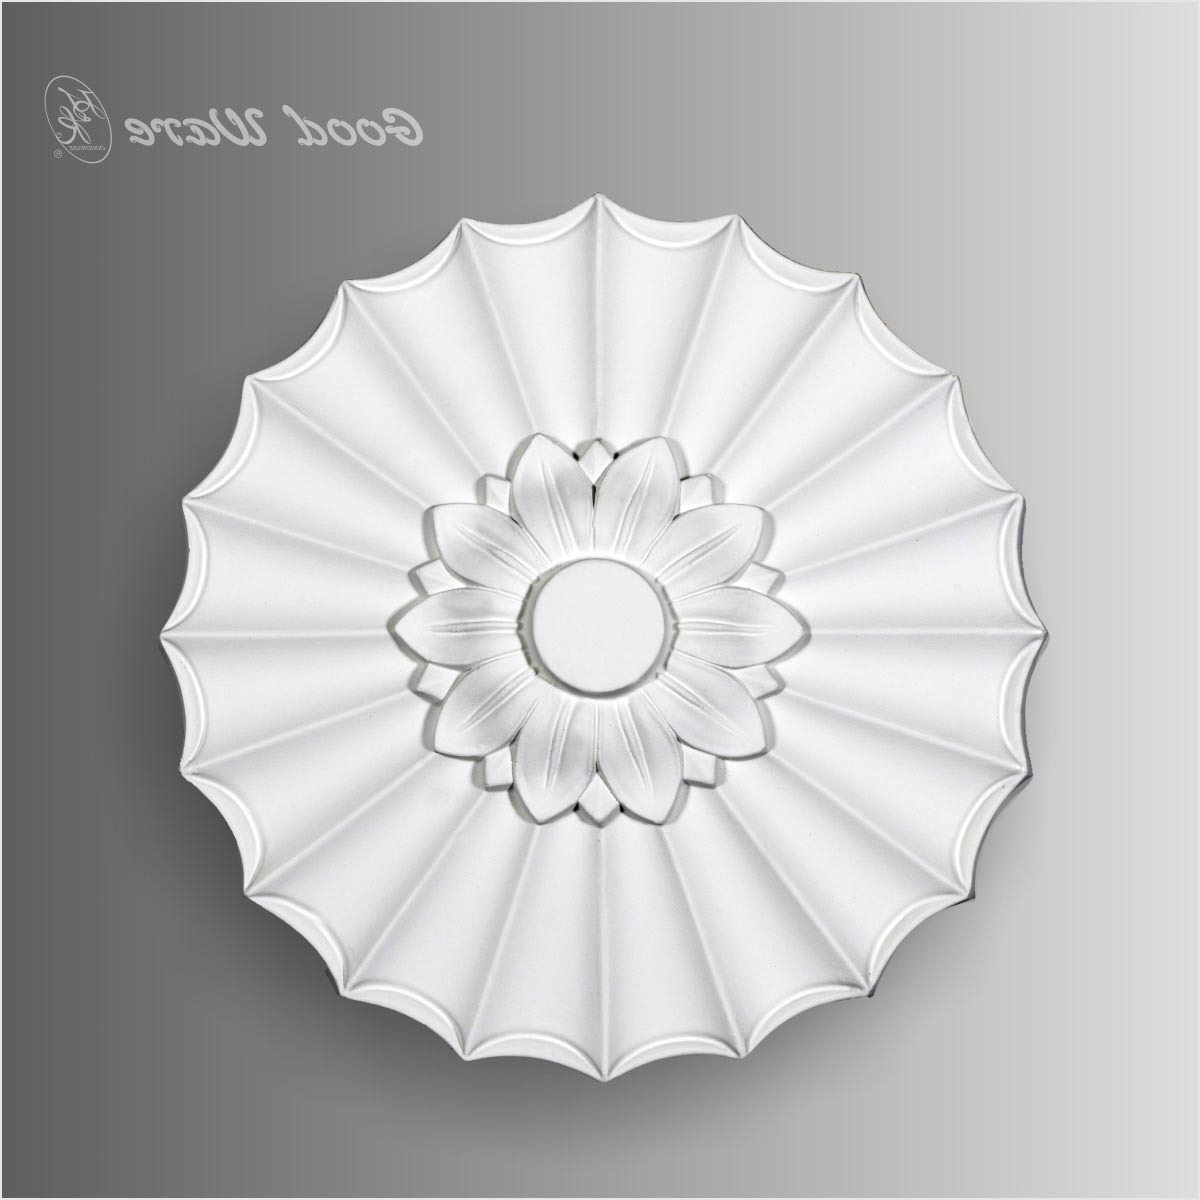 Small Polyurethane Ceiling Medallion Wall Decor European, Ceiling Within Well Known Small Medallion Wall Decor (View 17 of 20)